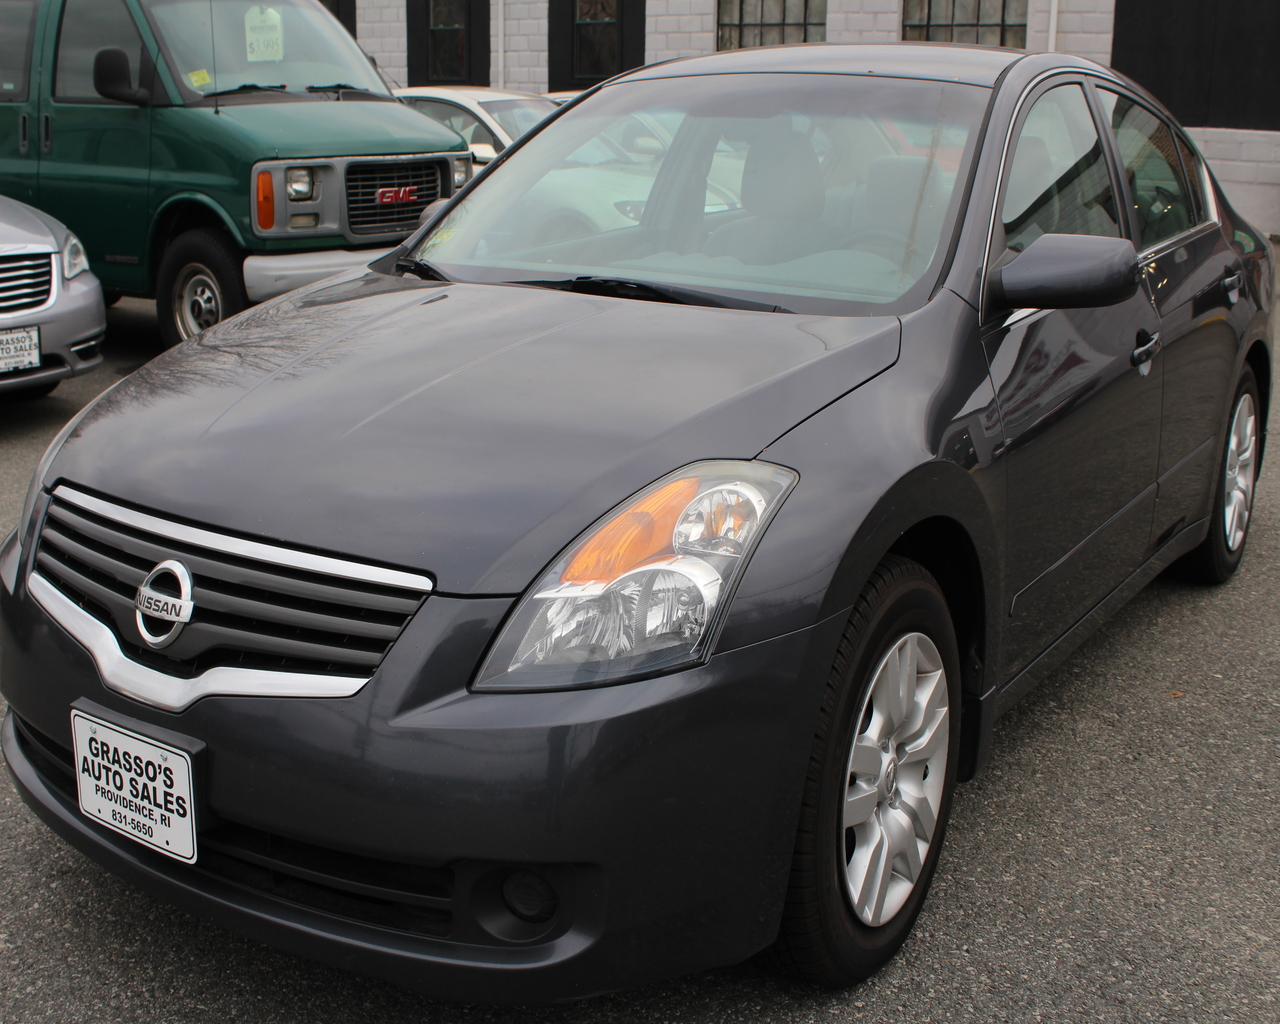 2009 Nissan Altima 4dr Sdn I4 CVT 25 S With slick coupe styling that bears a resemblance to the m